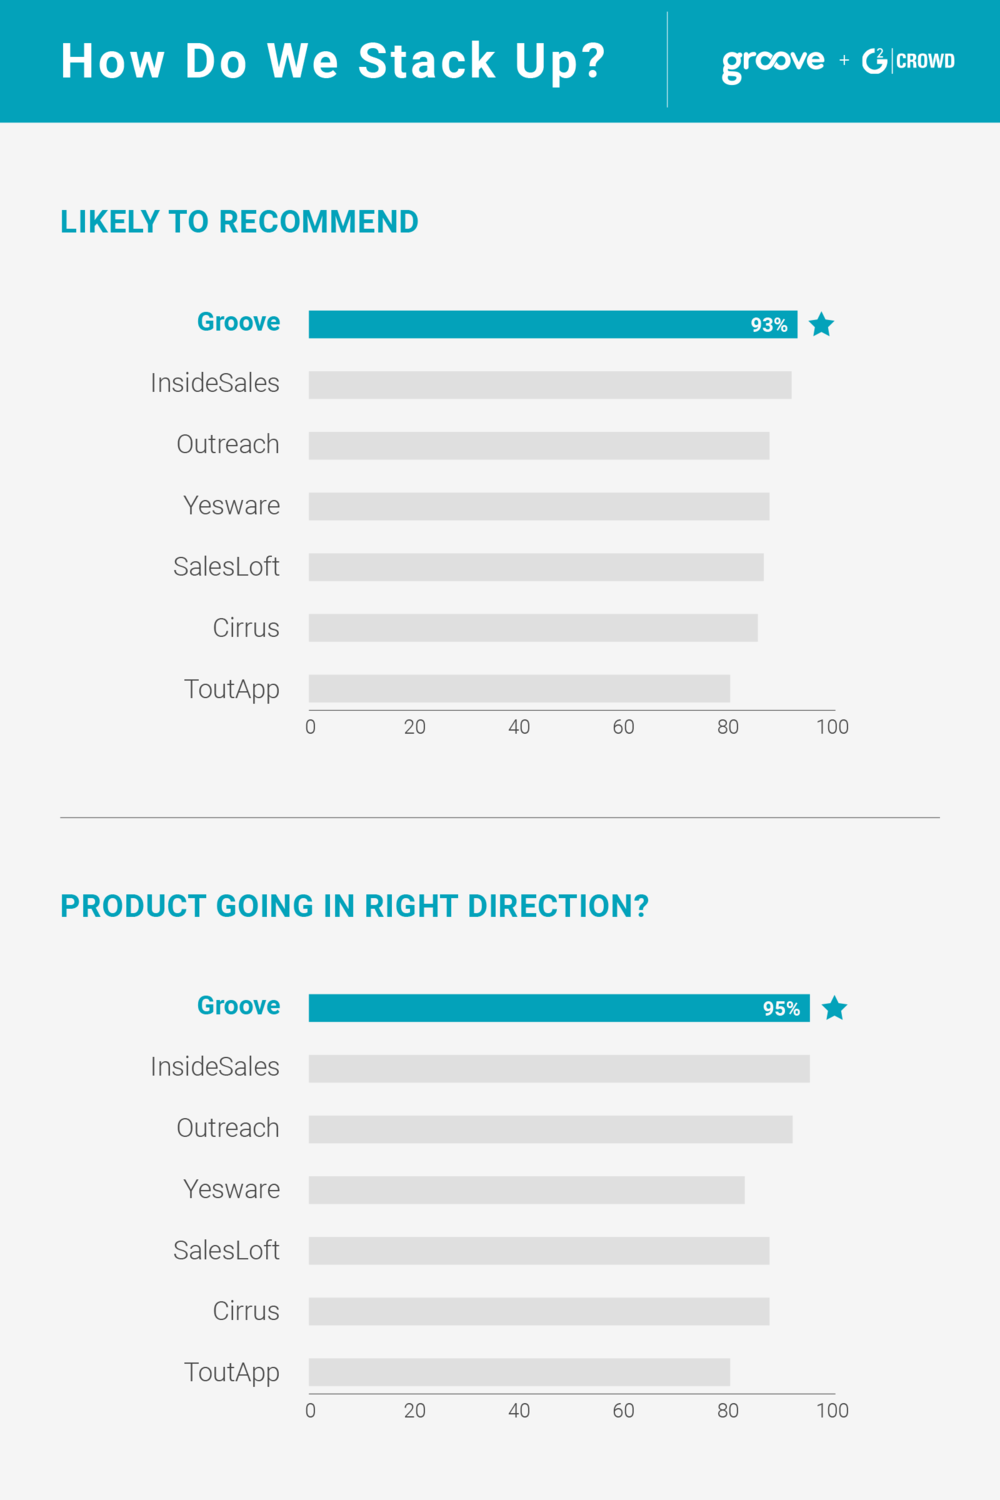 Groove is ranked #1 in customer satisfaction. Top 17 sales engagement software, rated by G2 Crowd